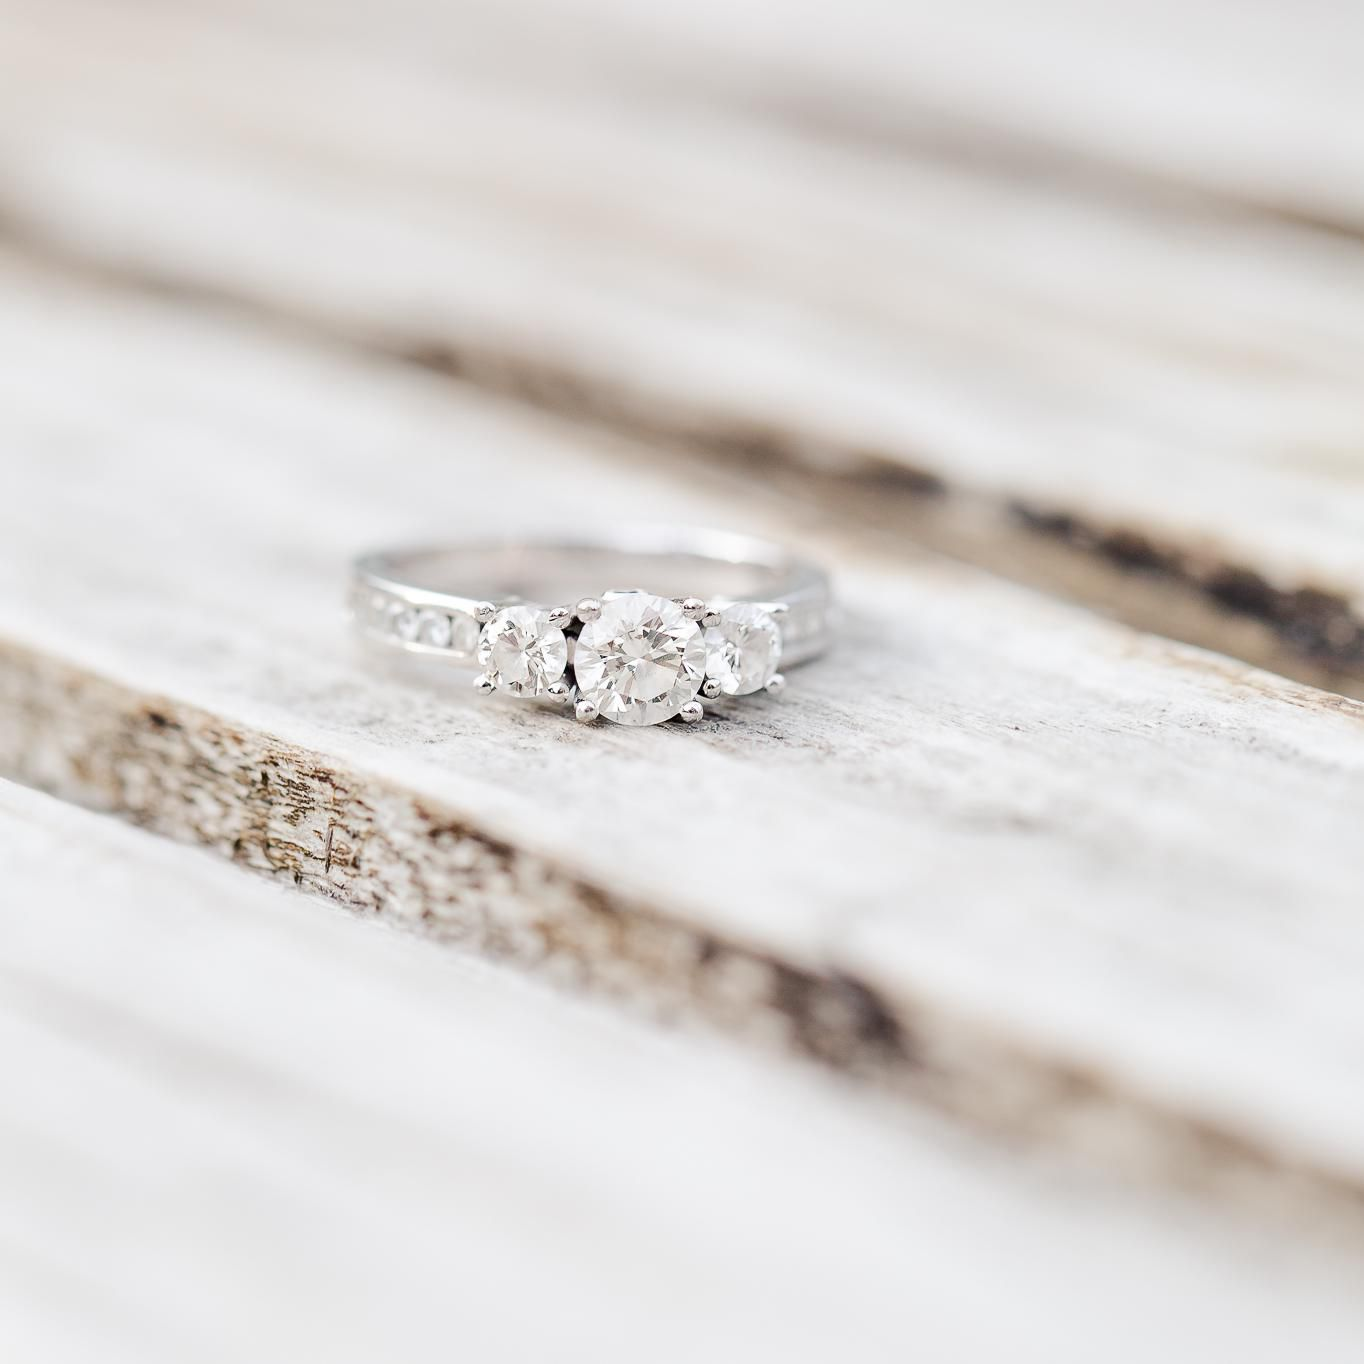 Engagement Ring Vs Wedding Ring.How To Clean Your Diamond Engagement Ring